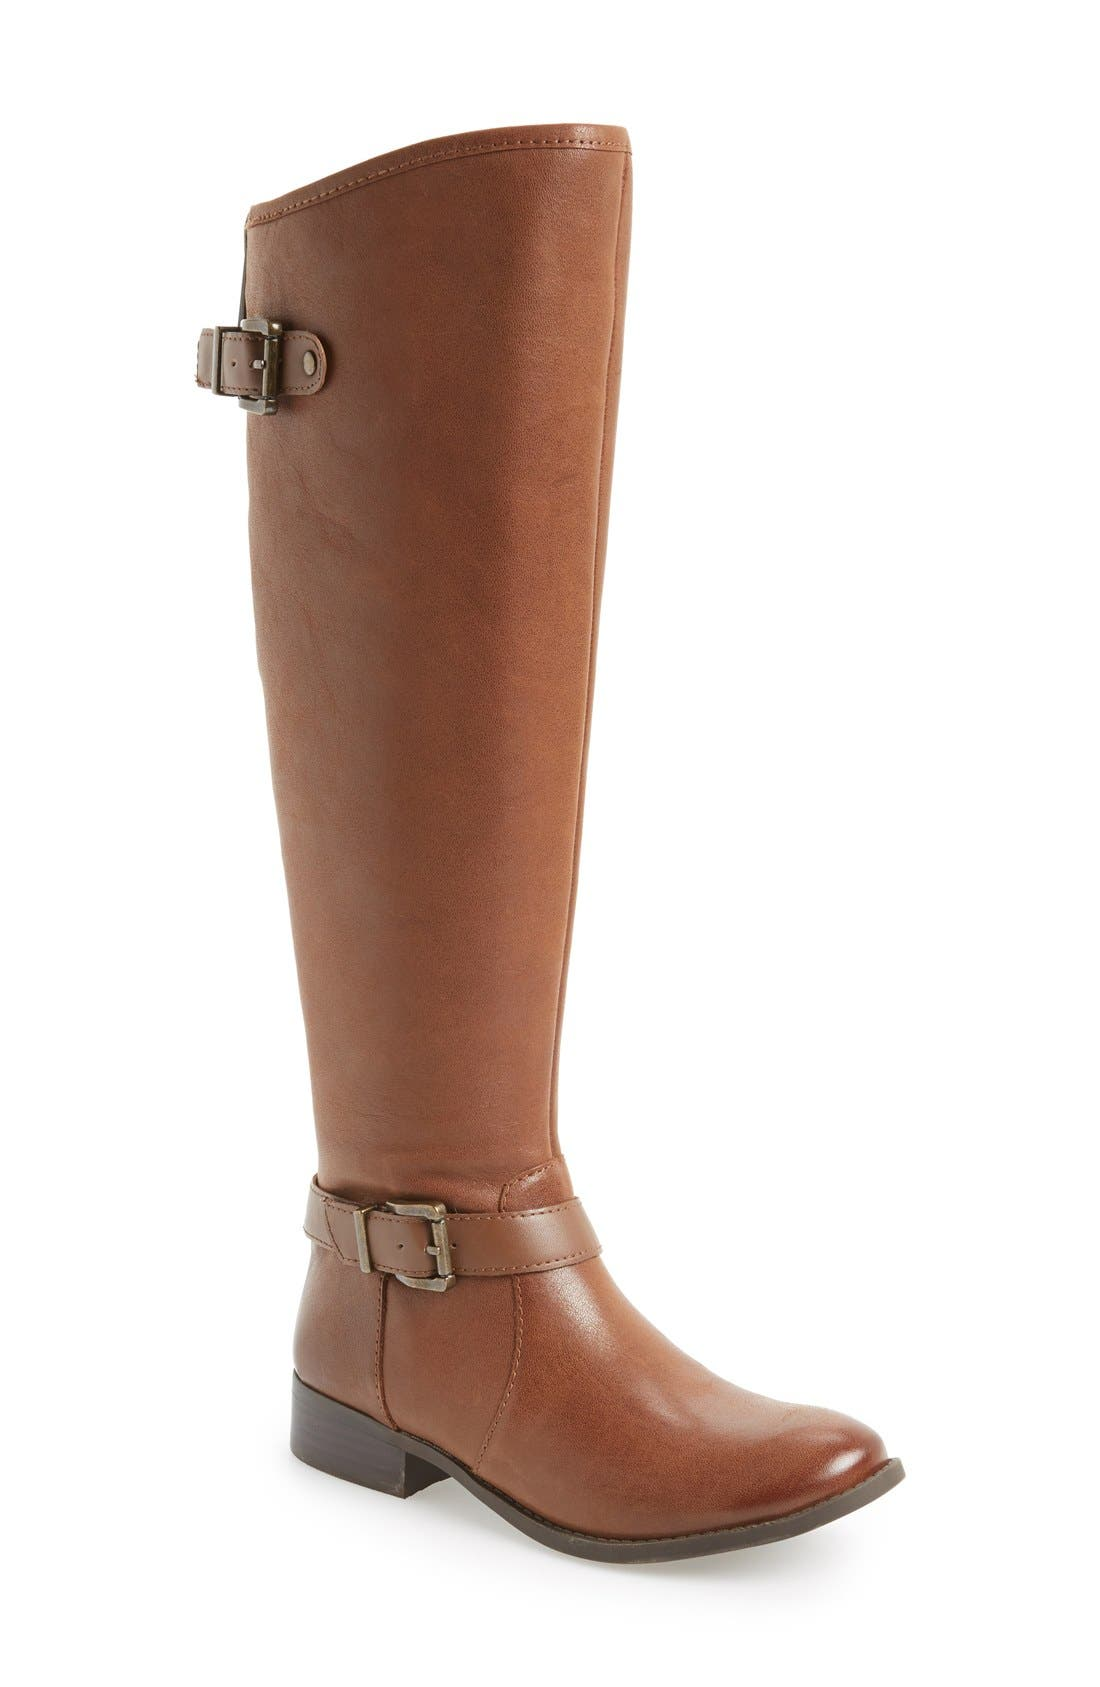 Alternate Image 1 Selected - Jessica Simpson 'Rinne' Riding Boot (Women)